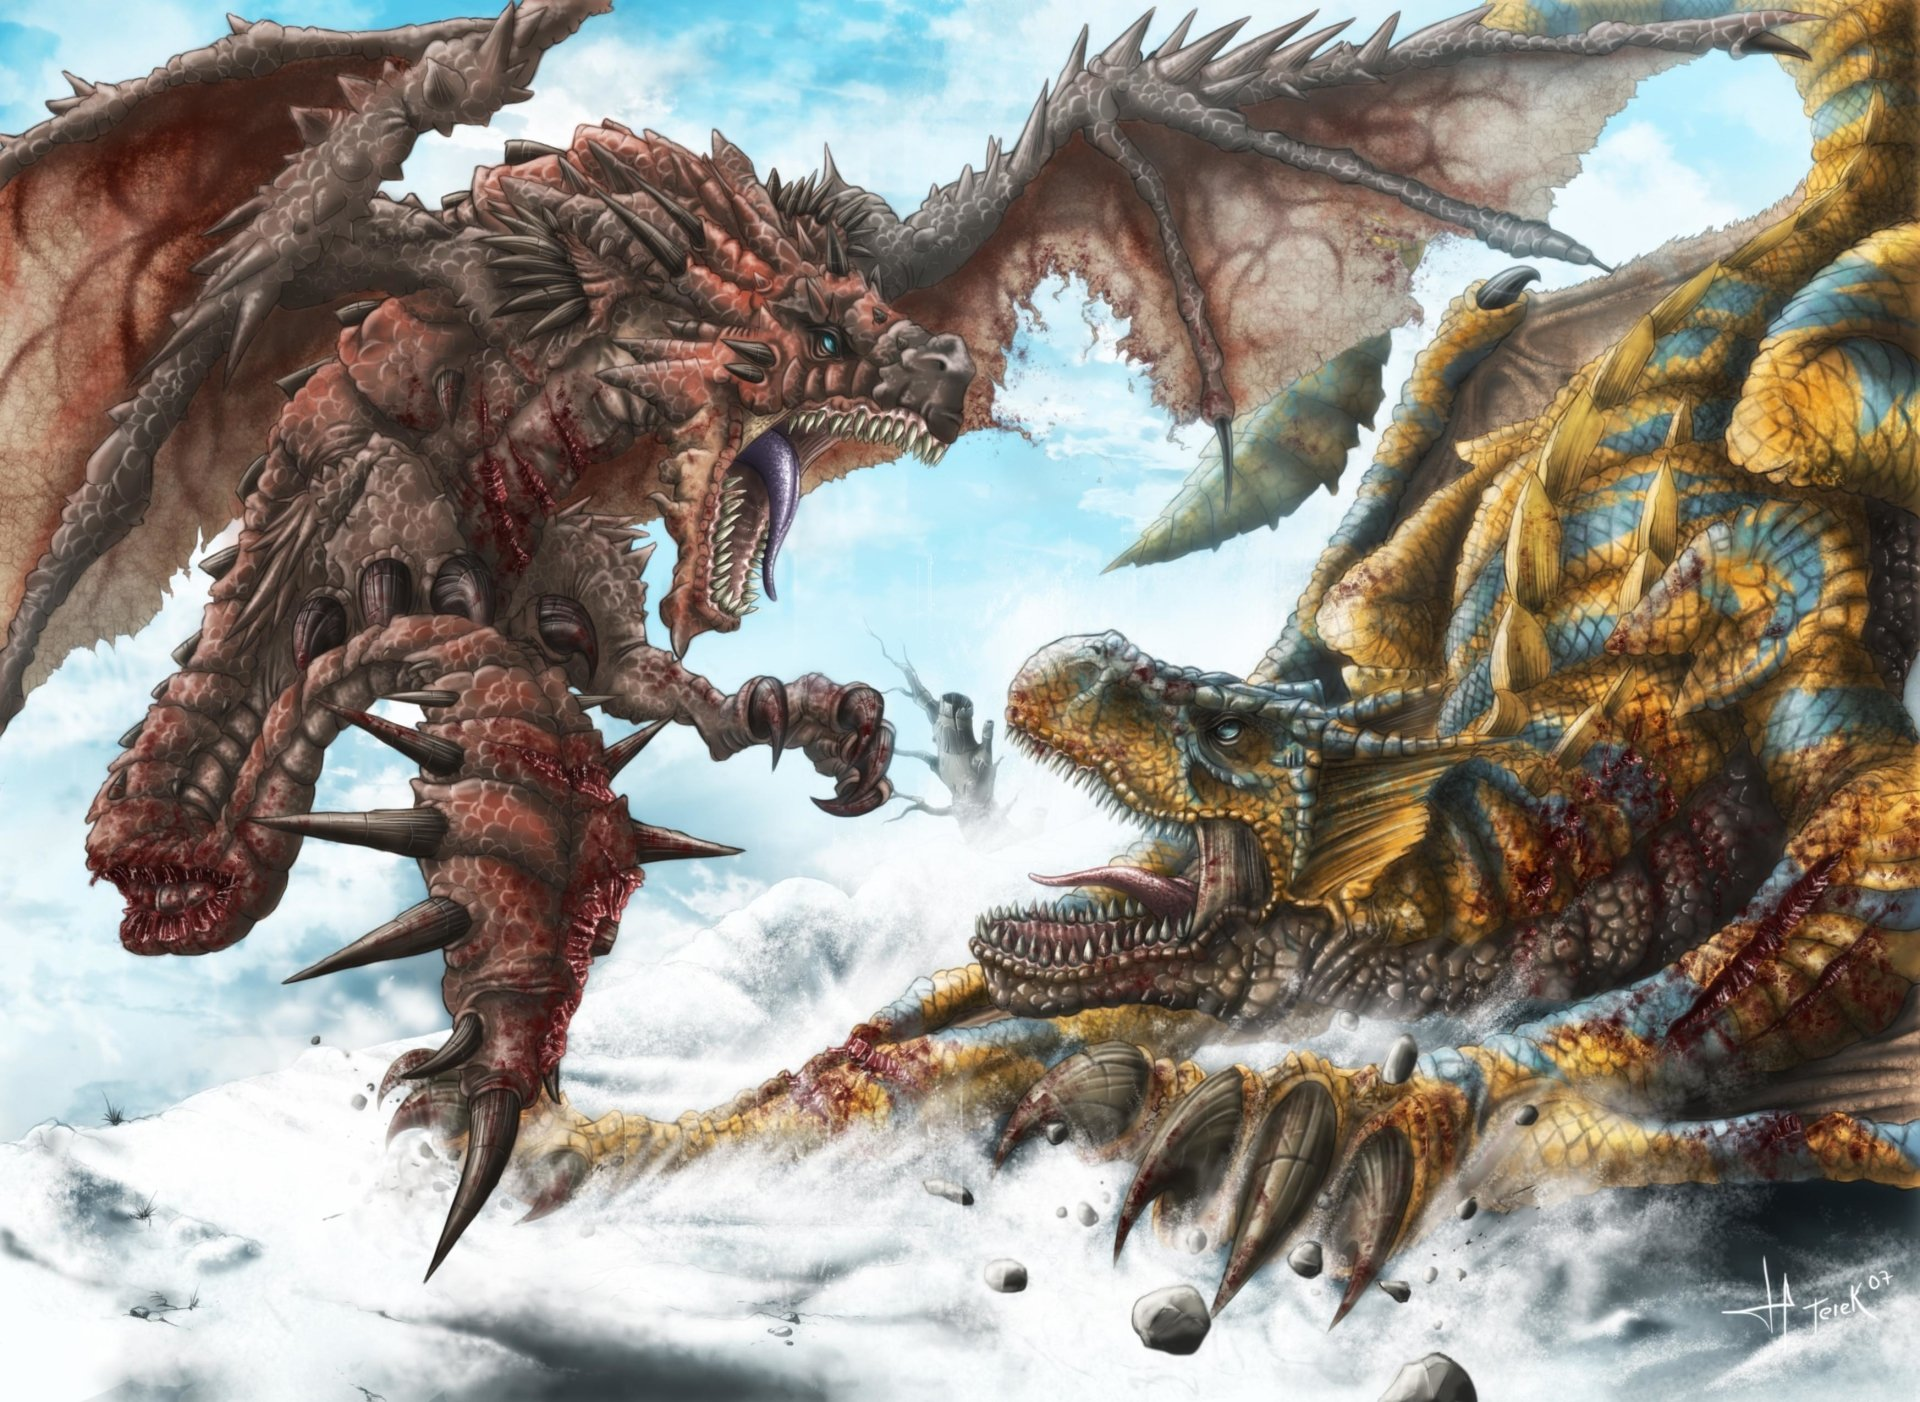 Video Game - Monster Hunter  Rathalos (Monster Hunter) Tigrex (Monster Hunter) Wallpaper